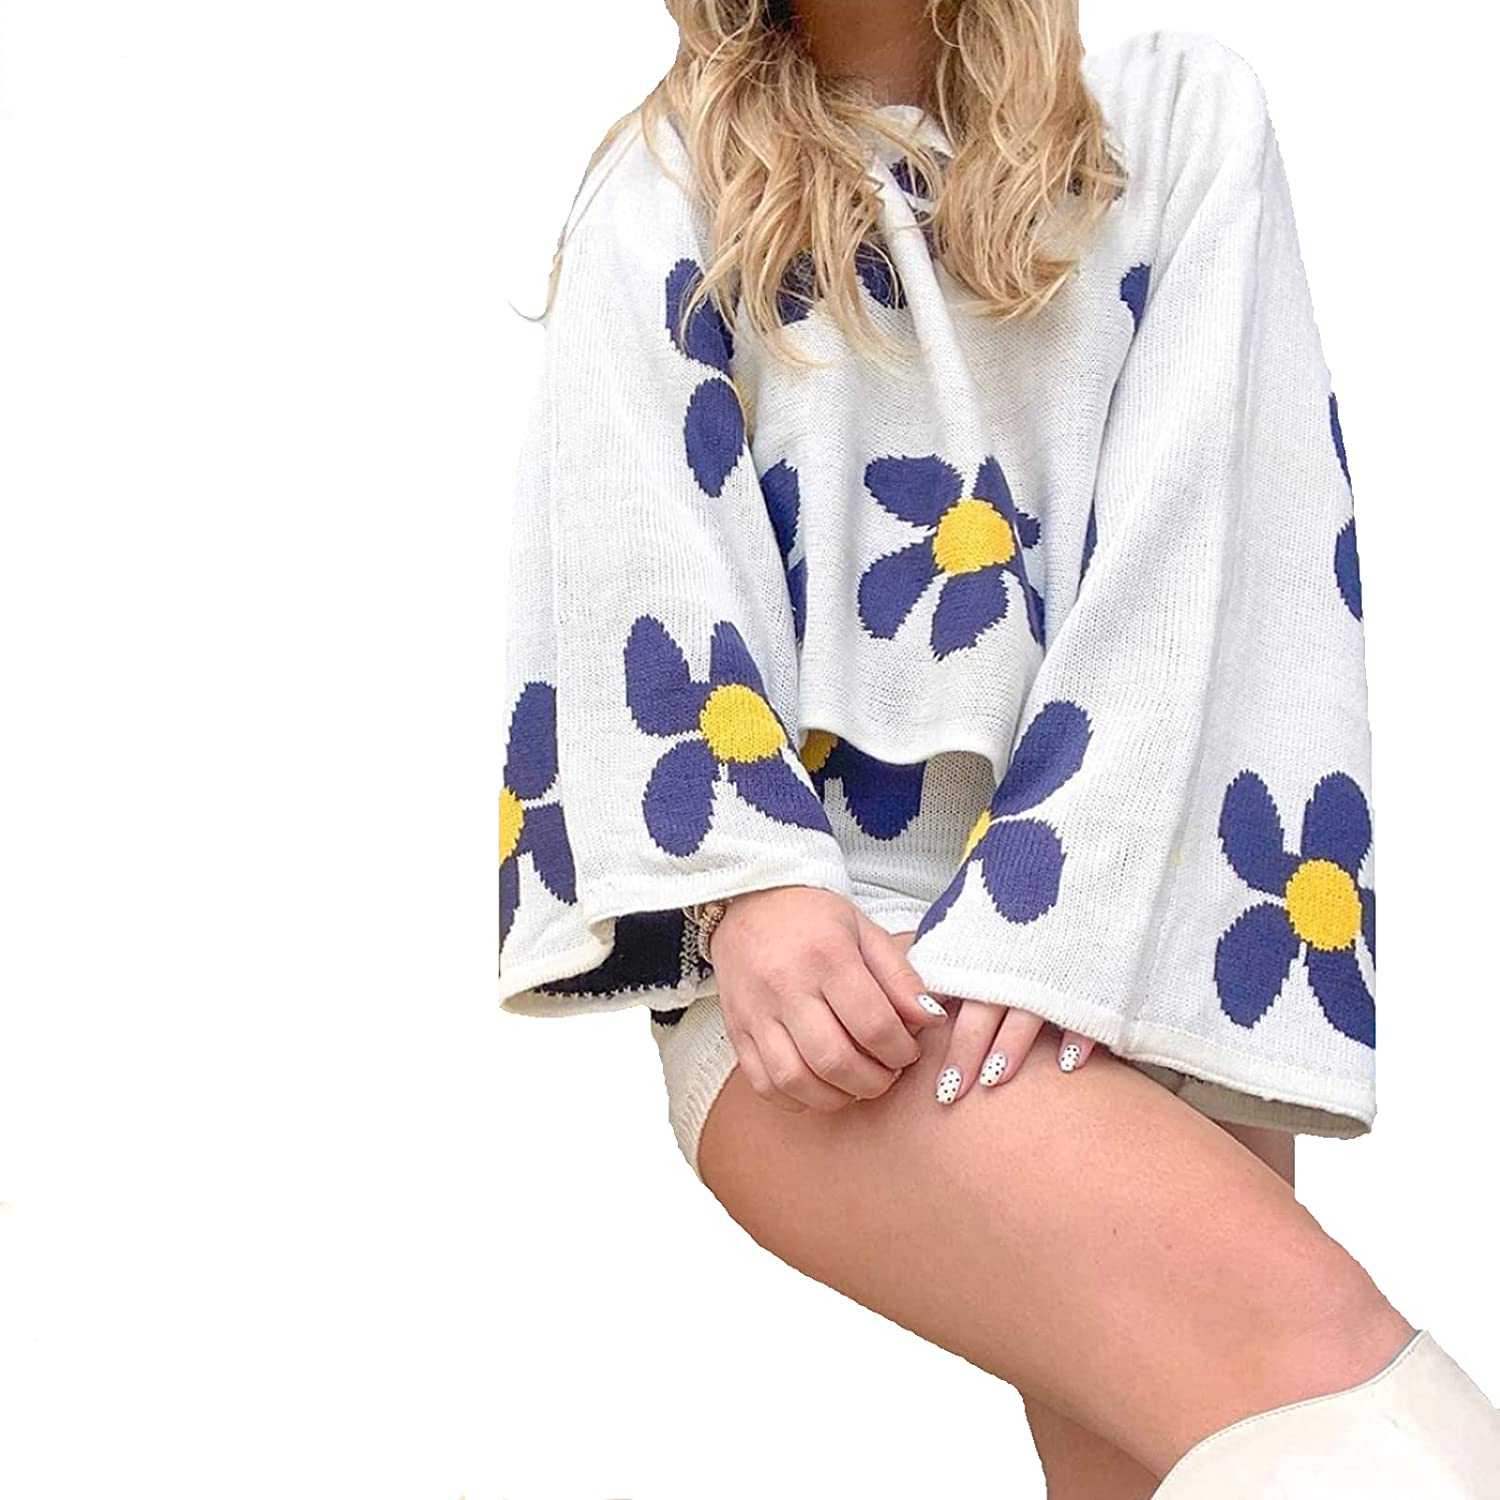 Knitted Set for Women Shorts Sweatsuit Long Sleeve Top and Shorts Pant Set Color Flower Pattern Tracksuits